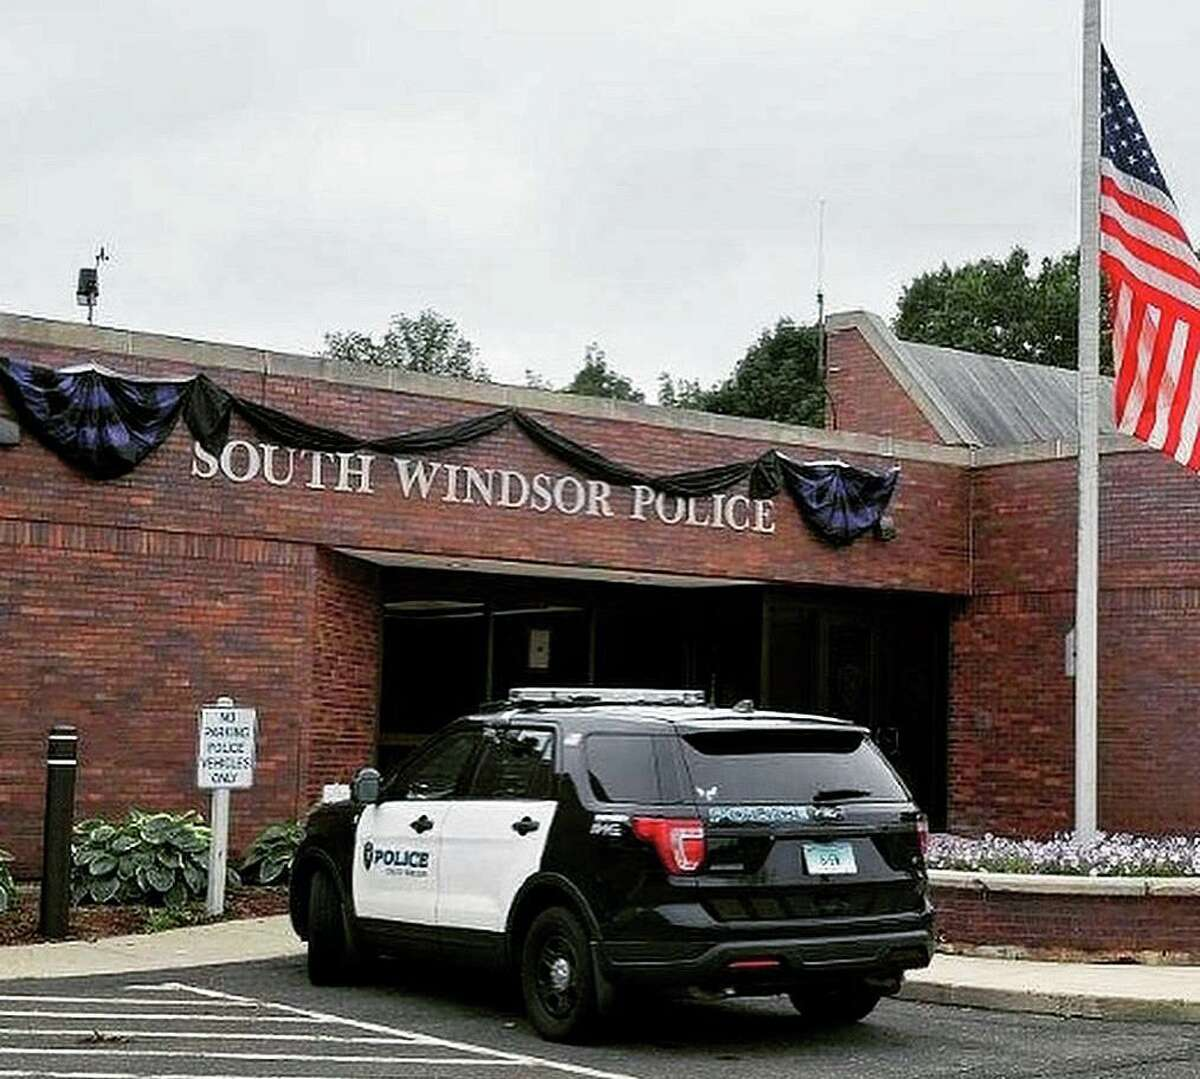 Police in South Windsor, Conn., are mourning the death of an officer who died Tuesday, July 13, 2021, from injuries he sustained in a serious collision with an allegedly intoxicated driver back in June.